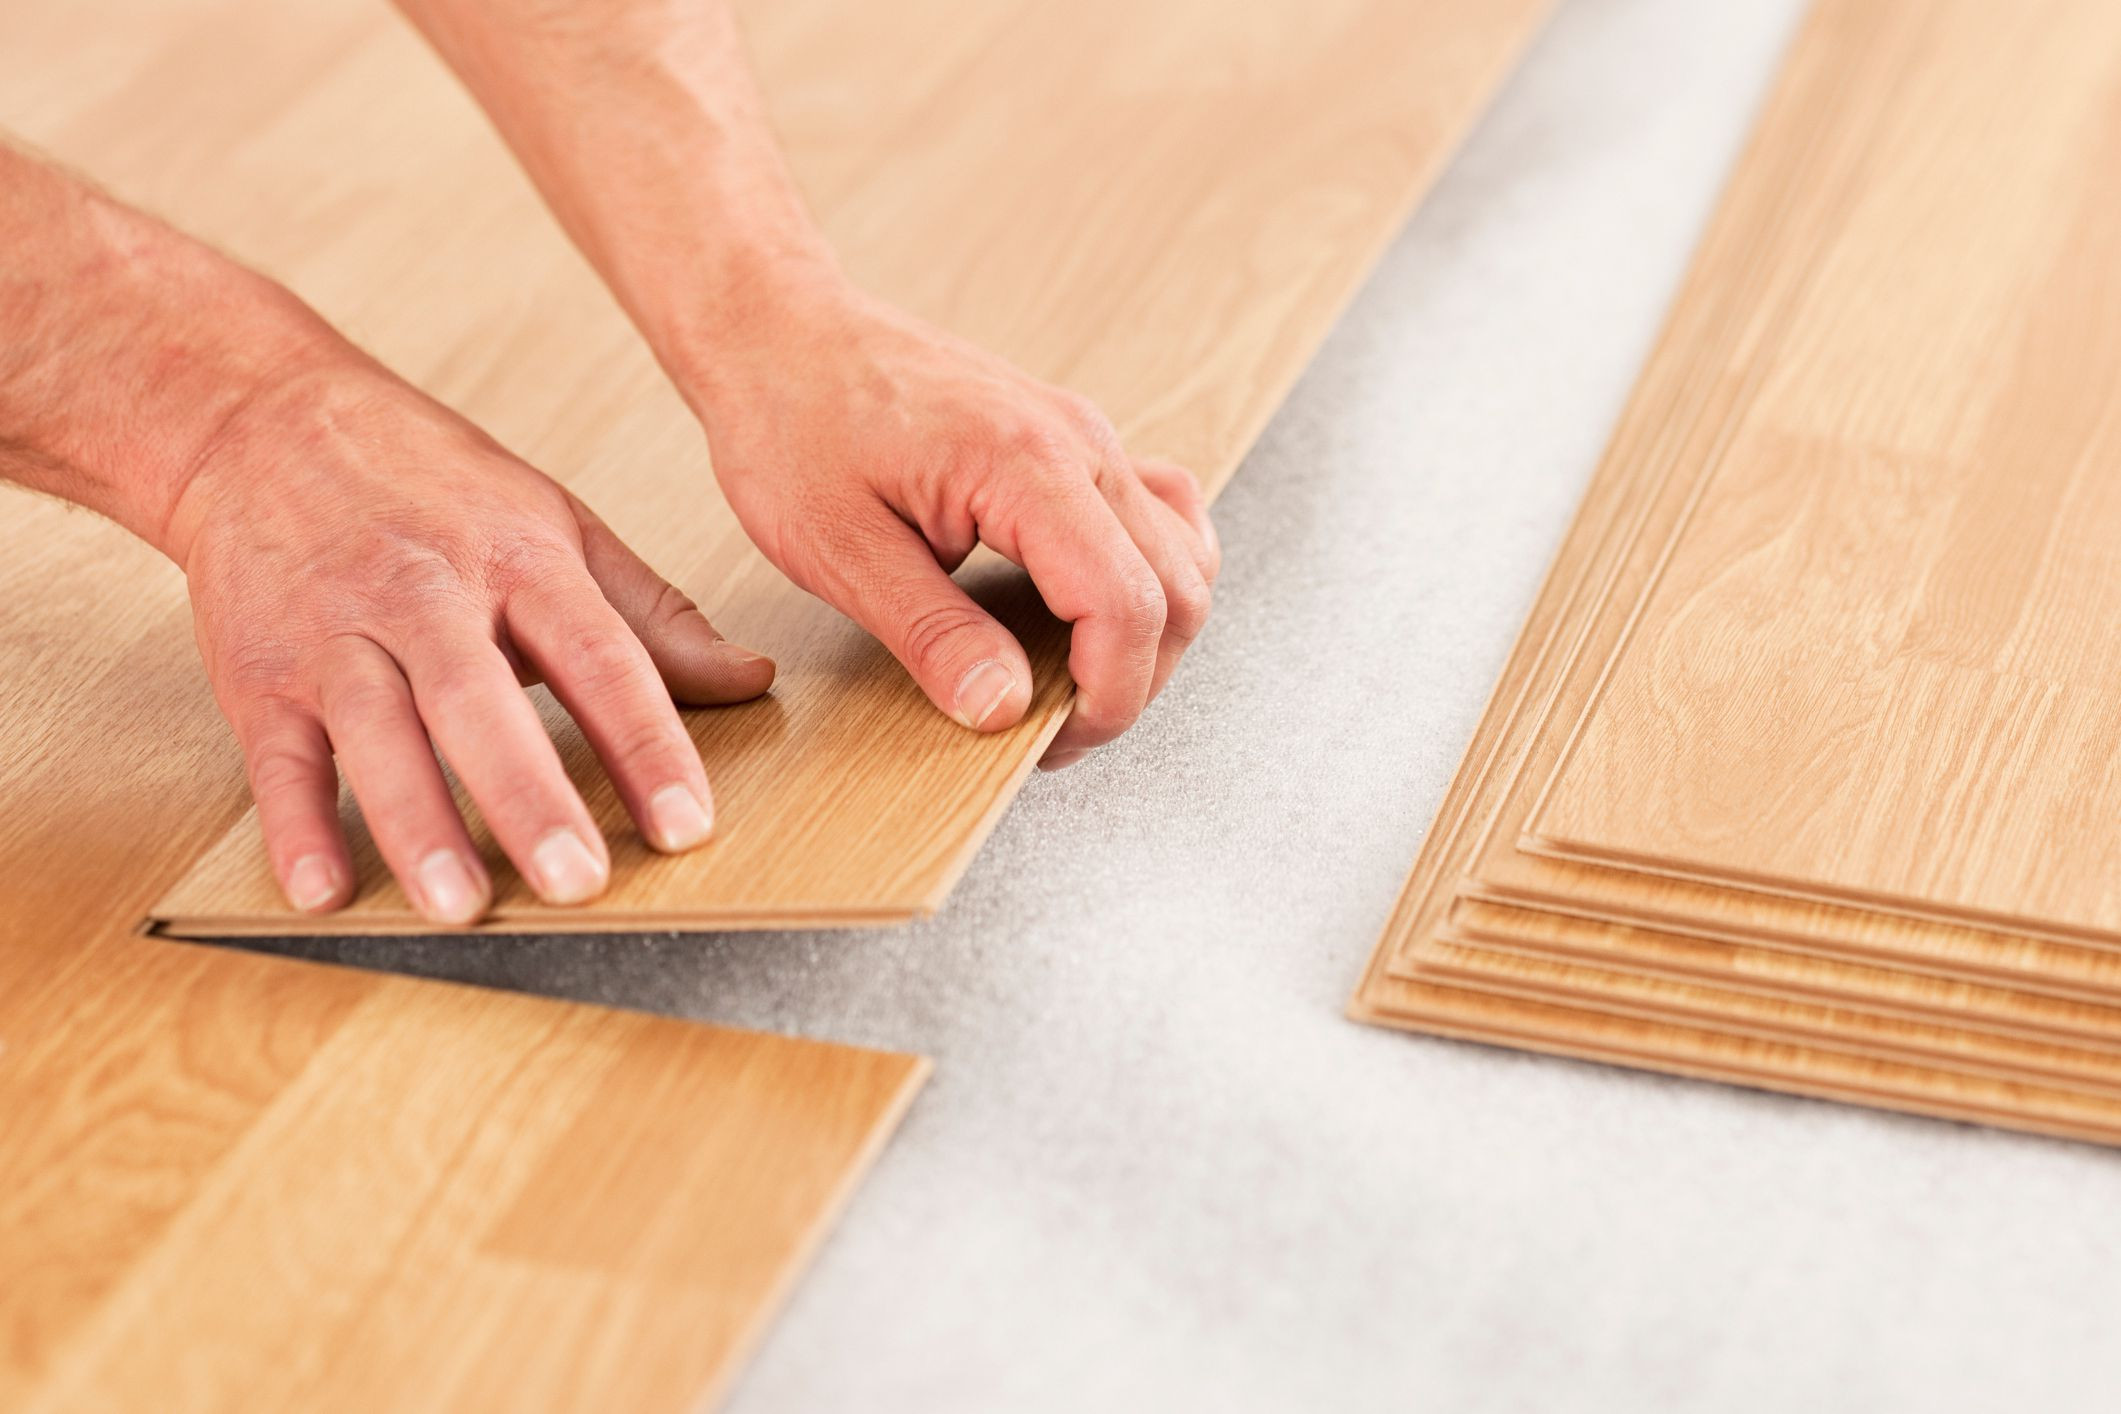 replacing hardwood floor boards cost of laminate underlayment pros and cons within laminate floor install gettyimages 154961561 588816495f9b58bdb3da1a02